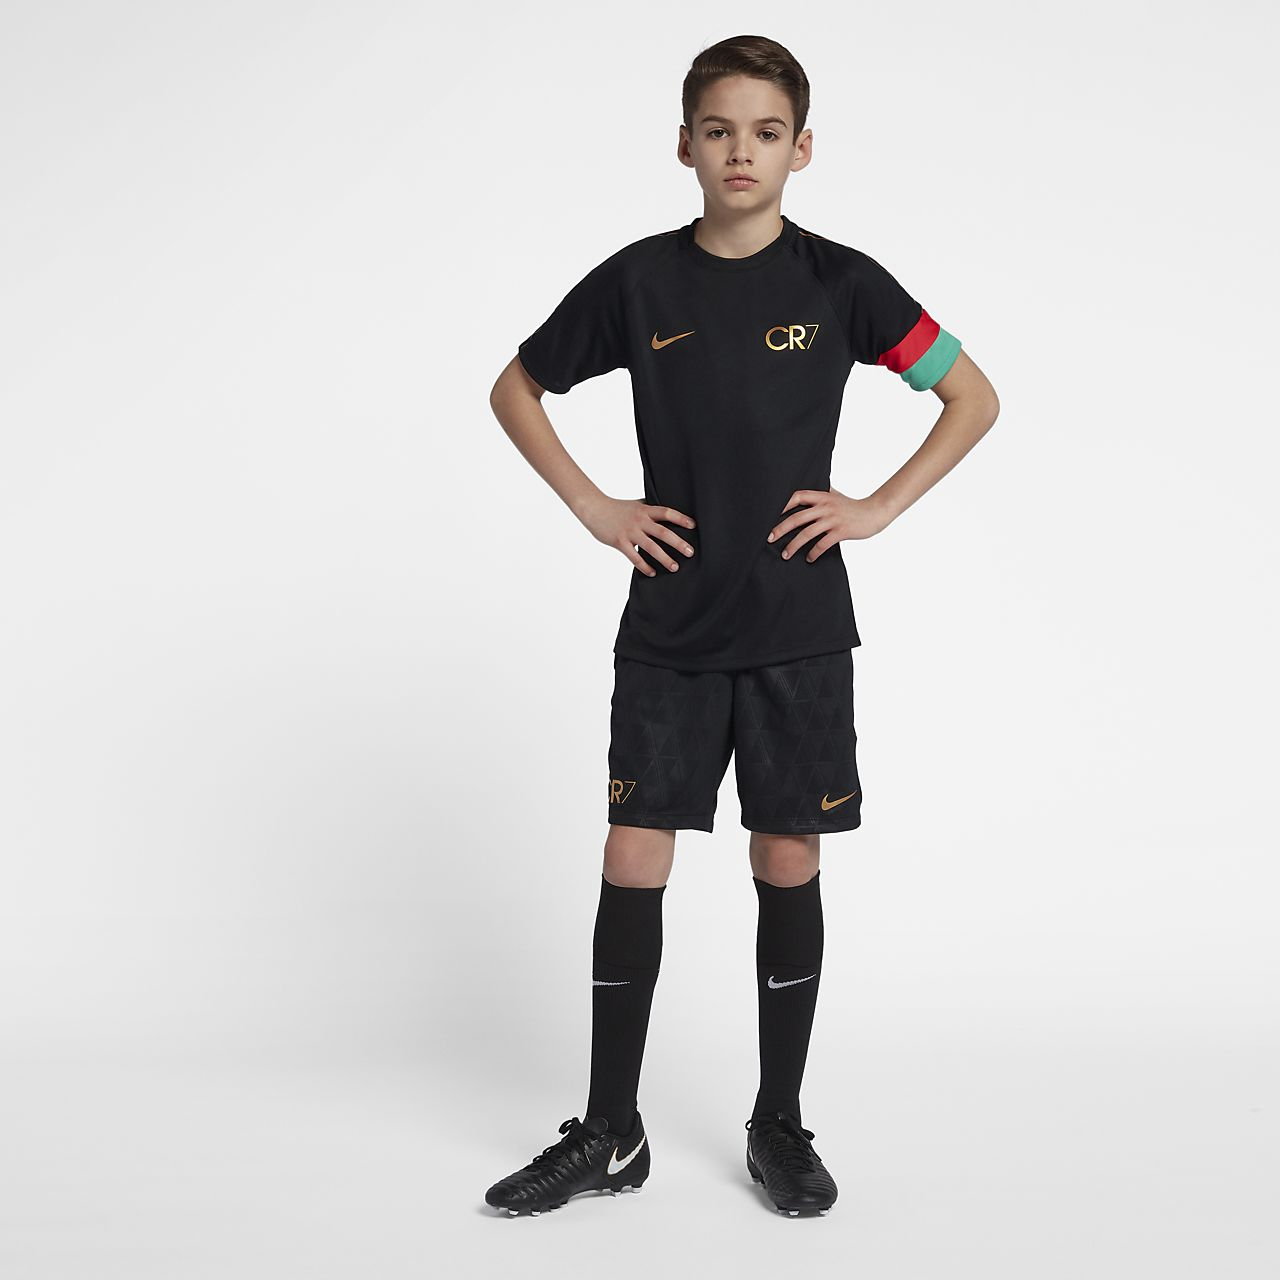 70389631683 Nike Dri-FIT Academy CR7 Older Kids  (Boys ) Football Shorts. Nike ...